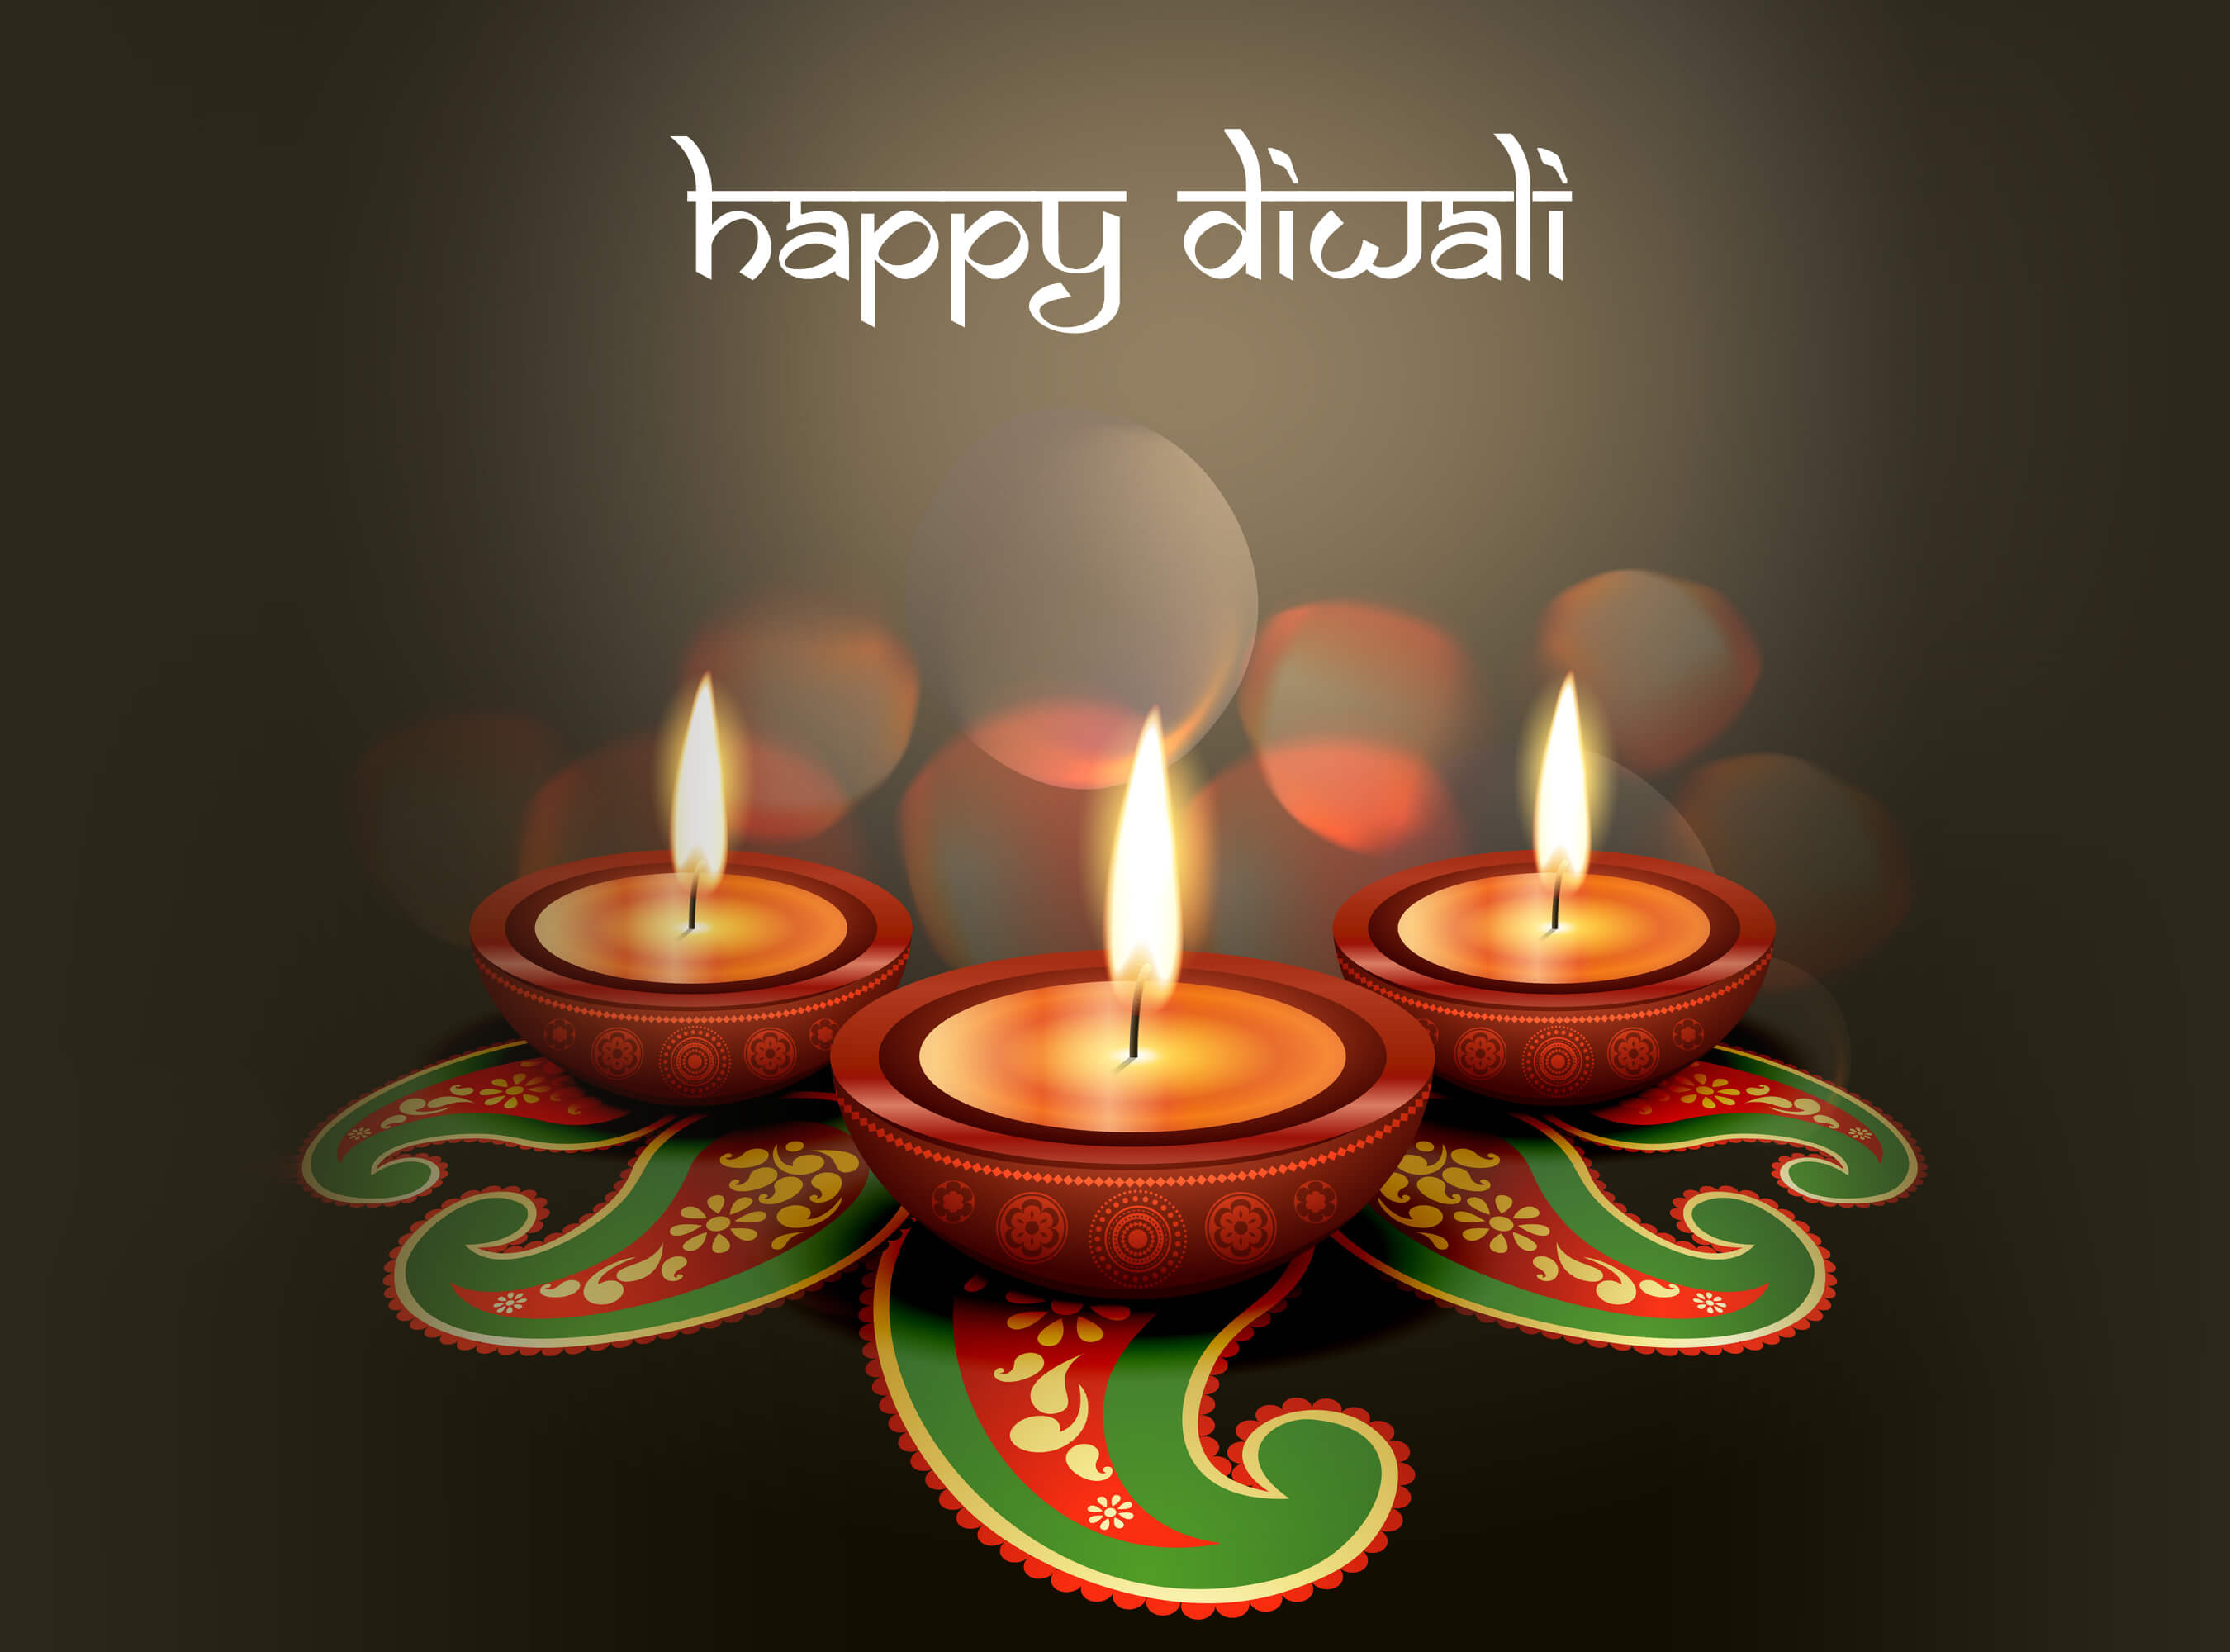 Happy diwali greetings wishes lamp hd desktop wallpaper m4hsunfo